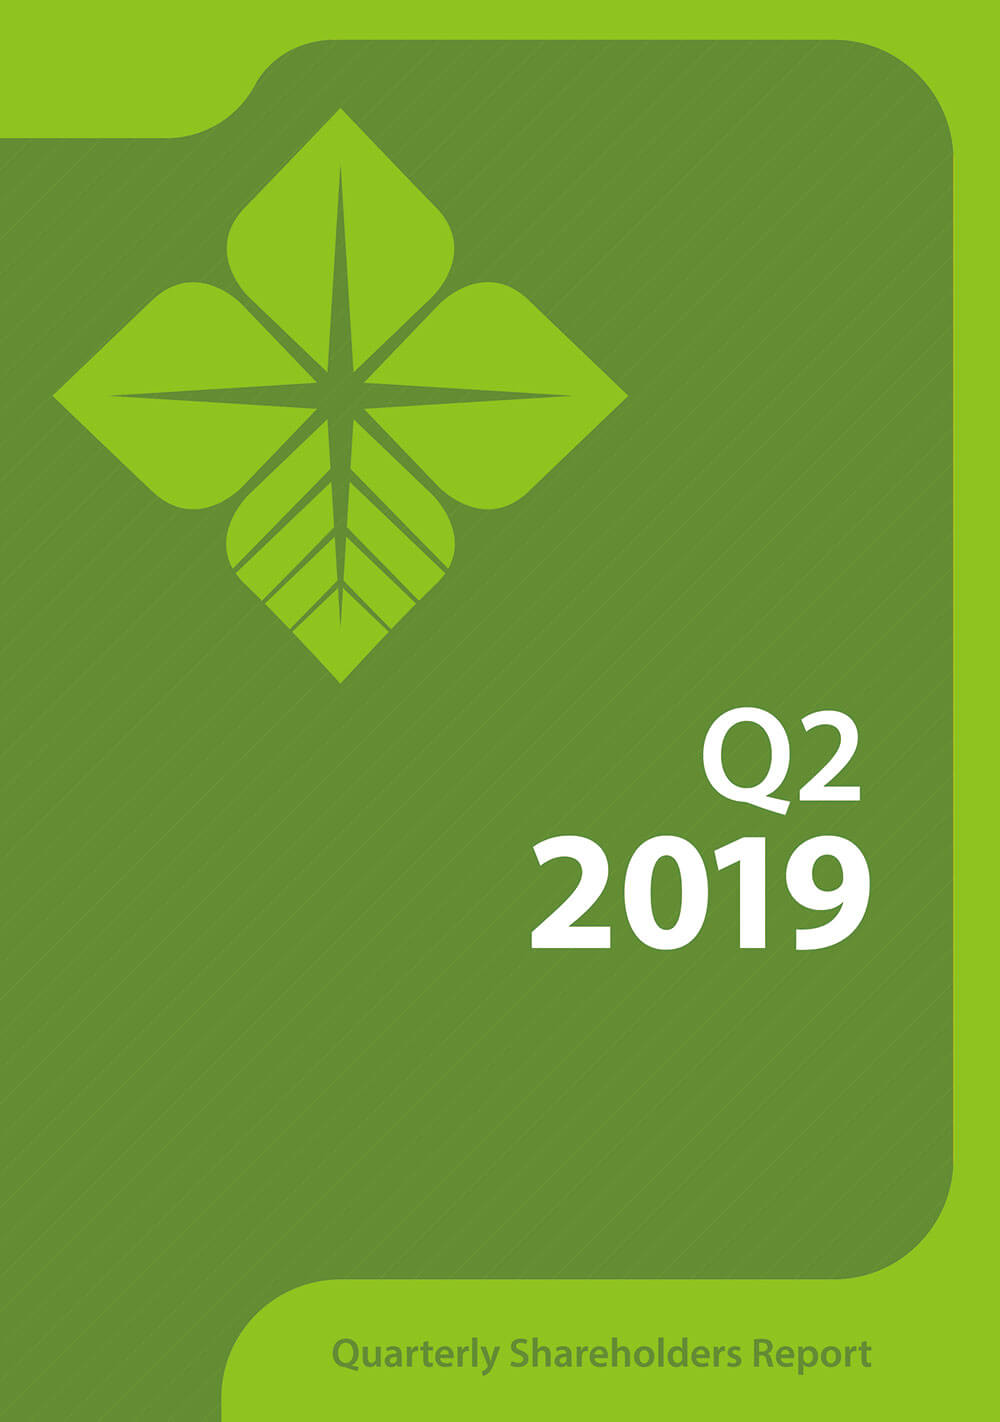 Download the Quarterly Shareholders Report (Q2 - 2019)